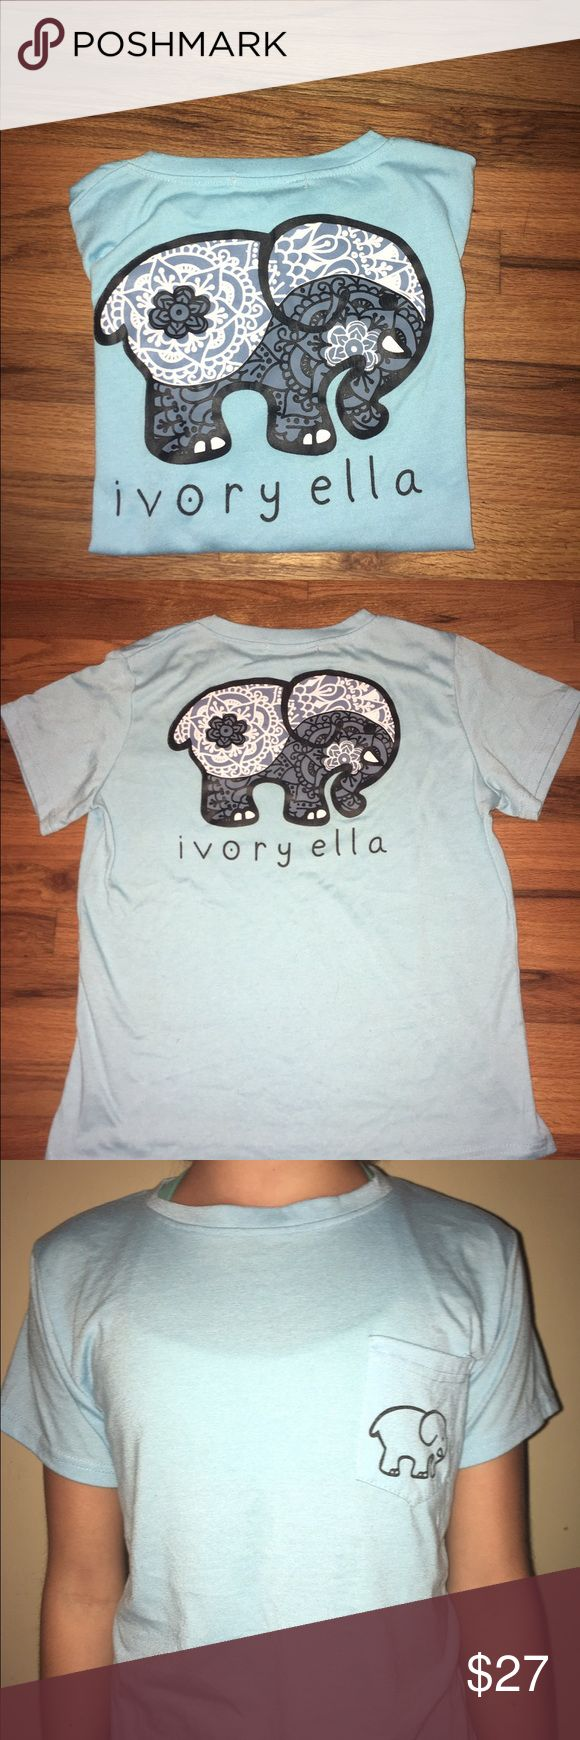 Ivory Ella t shirt Beautiful minty blue shirt by ivory Ella. Black and white Yin yang design inside the elephant on back. Size large but I am a women's small and it fits well, on the looser side. I am honestly not sure if this is authentic or not, because the tag does not say ivory Ella. Either way, it has all the classic ivory Ella features down to the fabric and fit. Feel free to comment any questions, or offer ivory ella Tops Tees - Short Sleeve